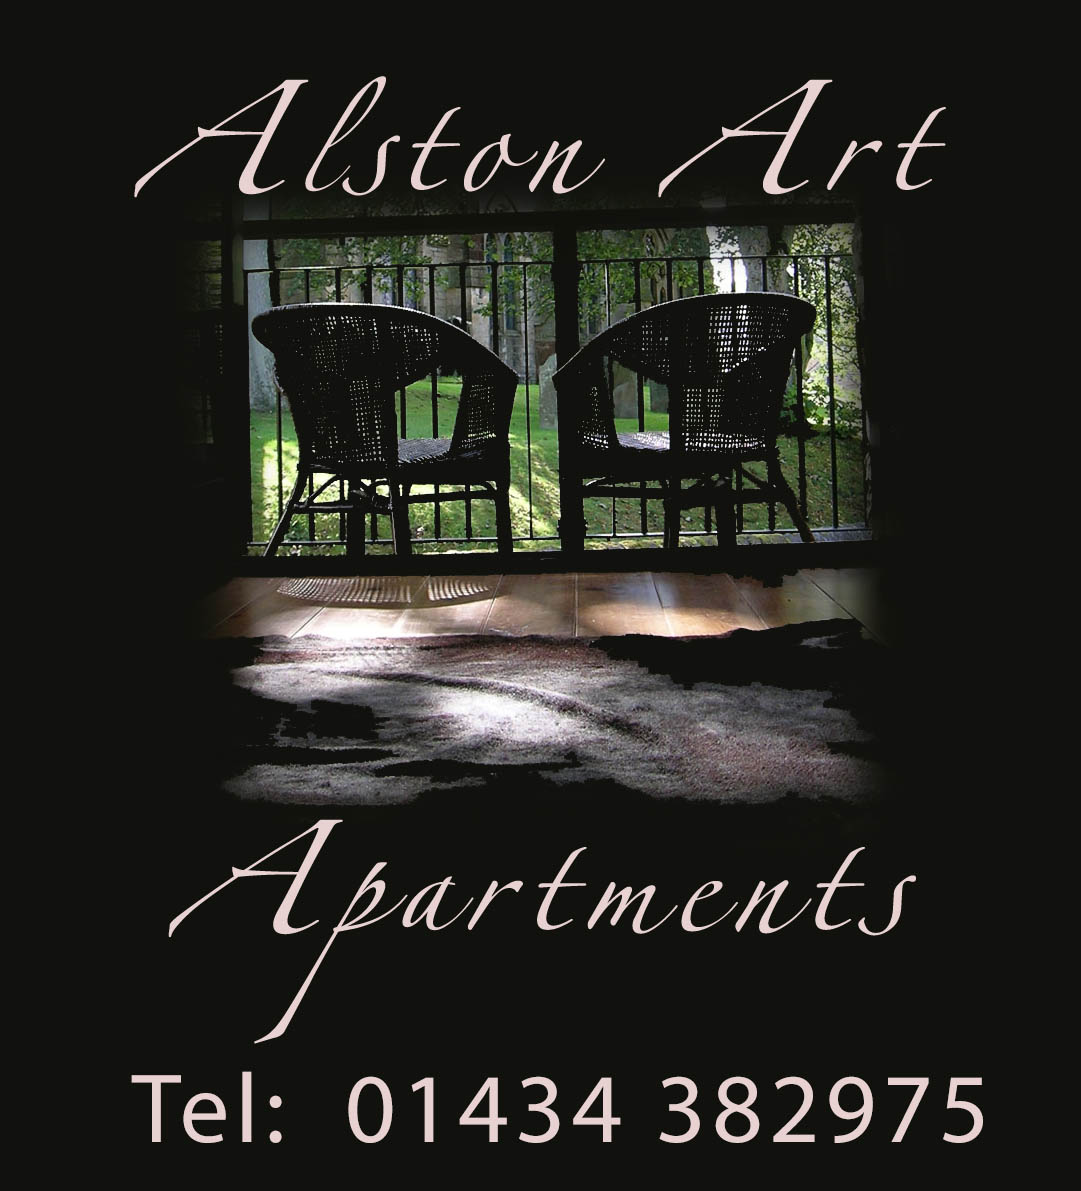 Art Apartments Alston